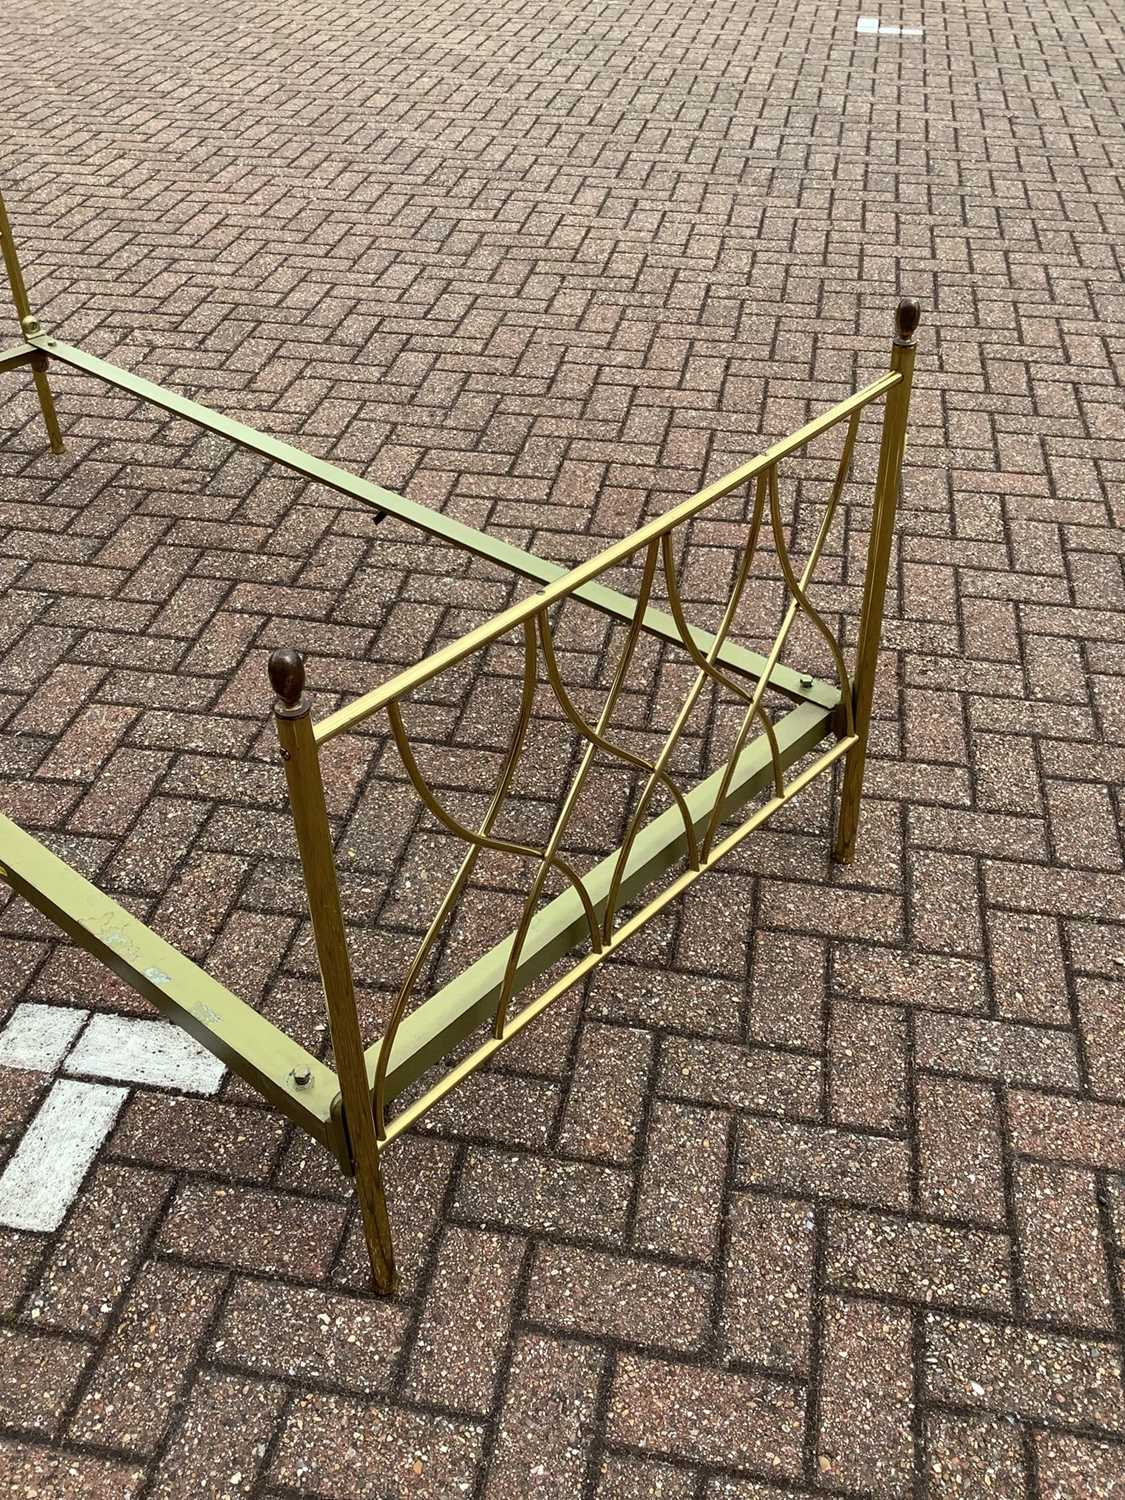 Brass single bed with side irons, 89cm wide - Image 4 of 11